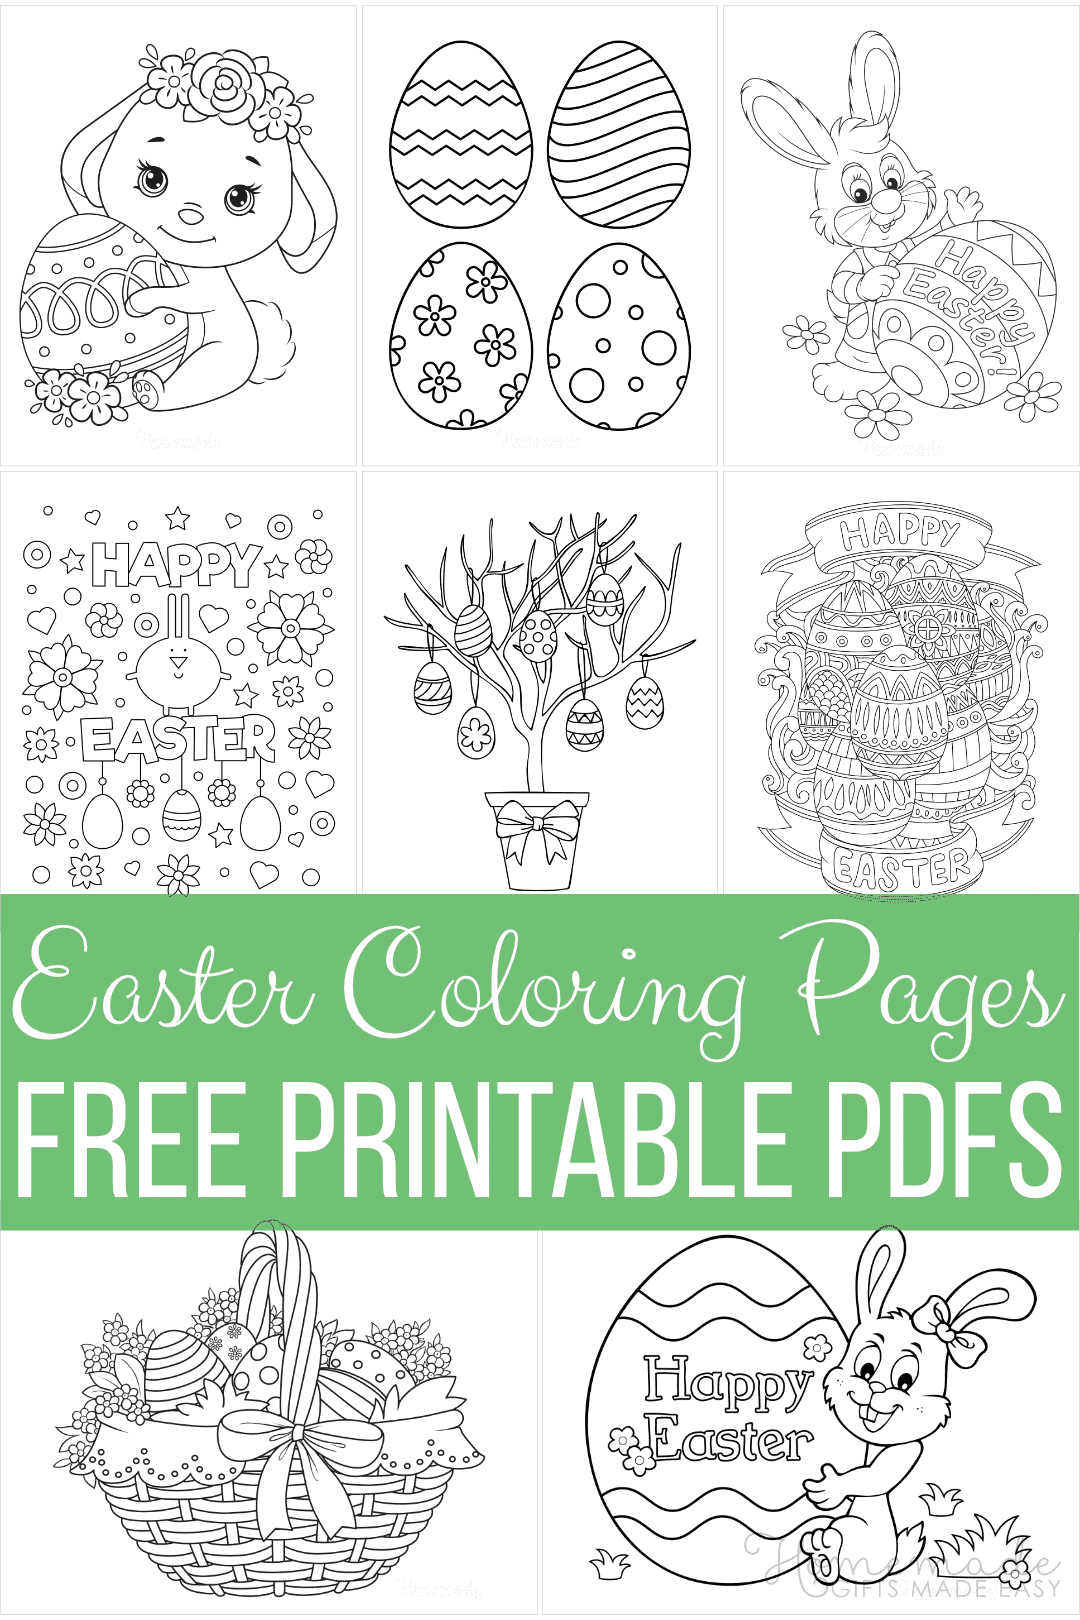 100 Easter Coloring Pages | 100 Free Printable PDFs